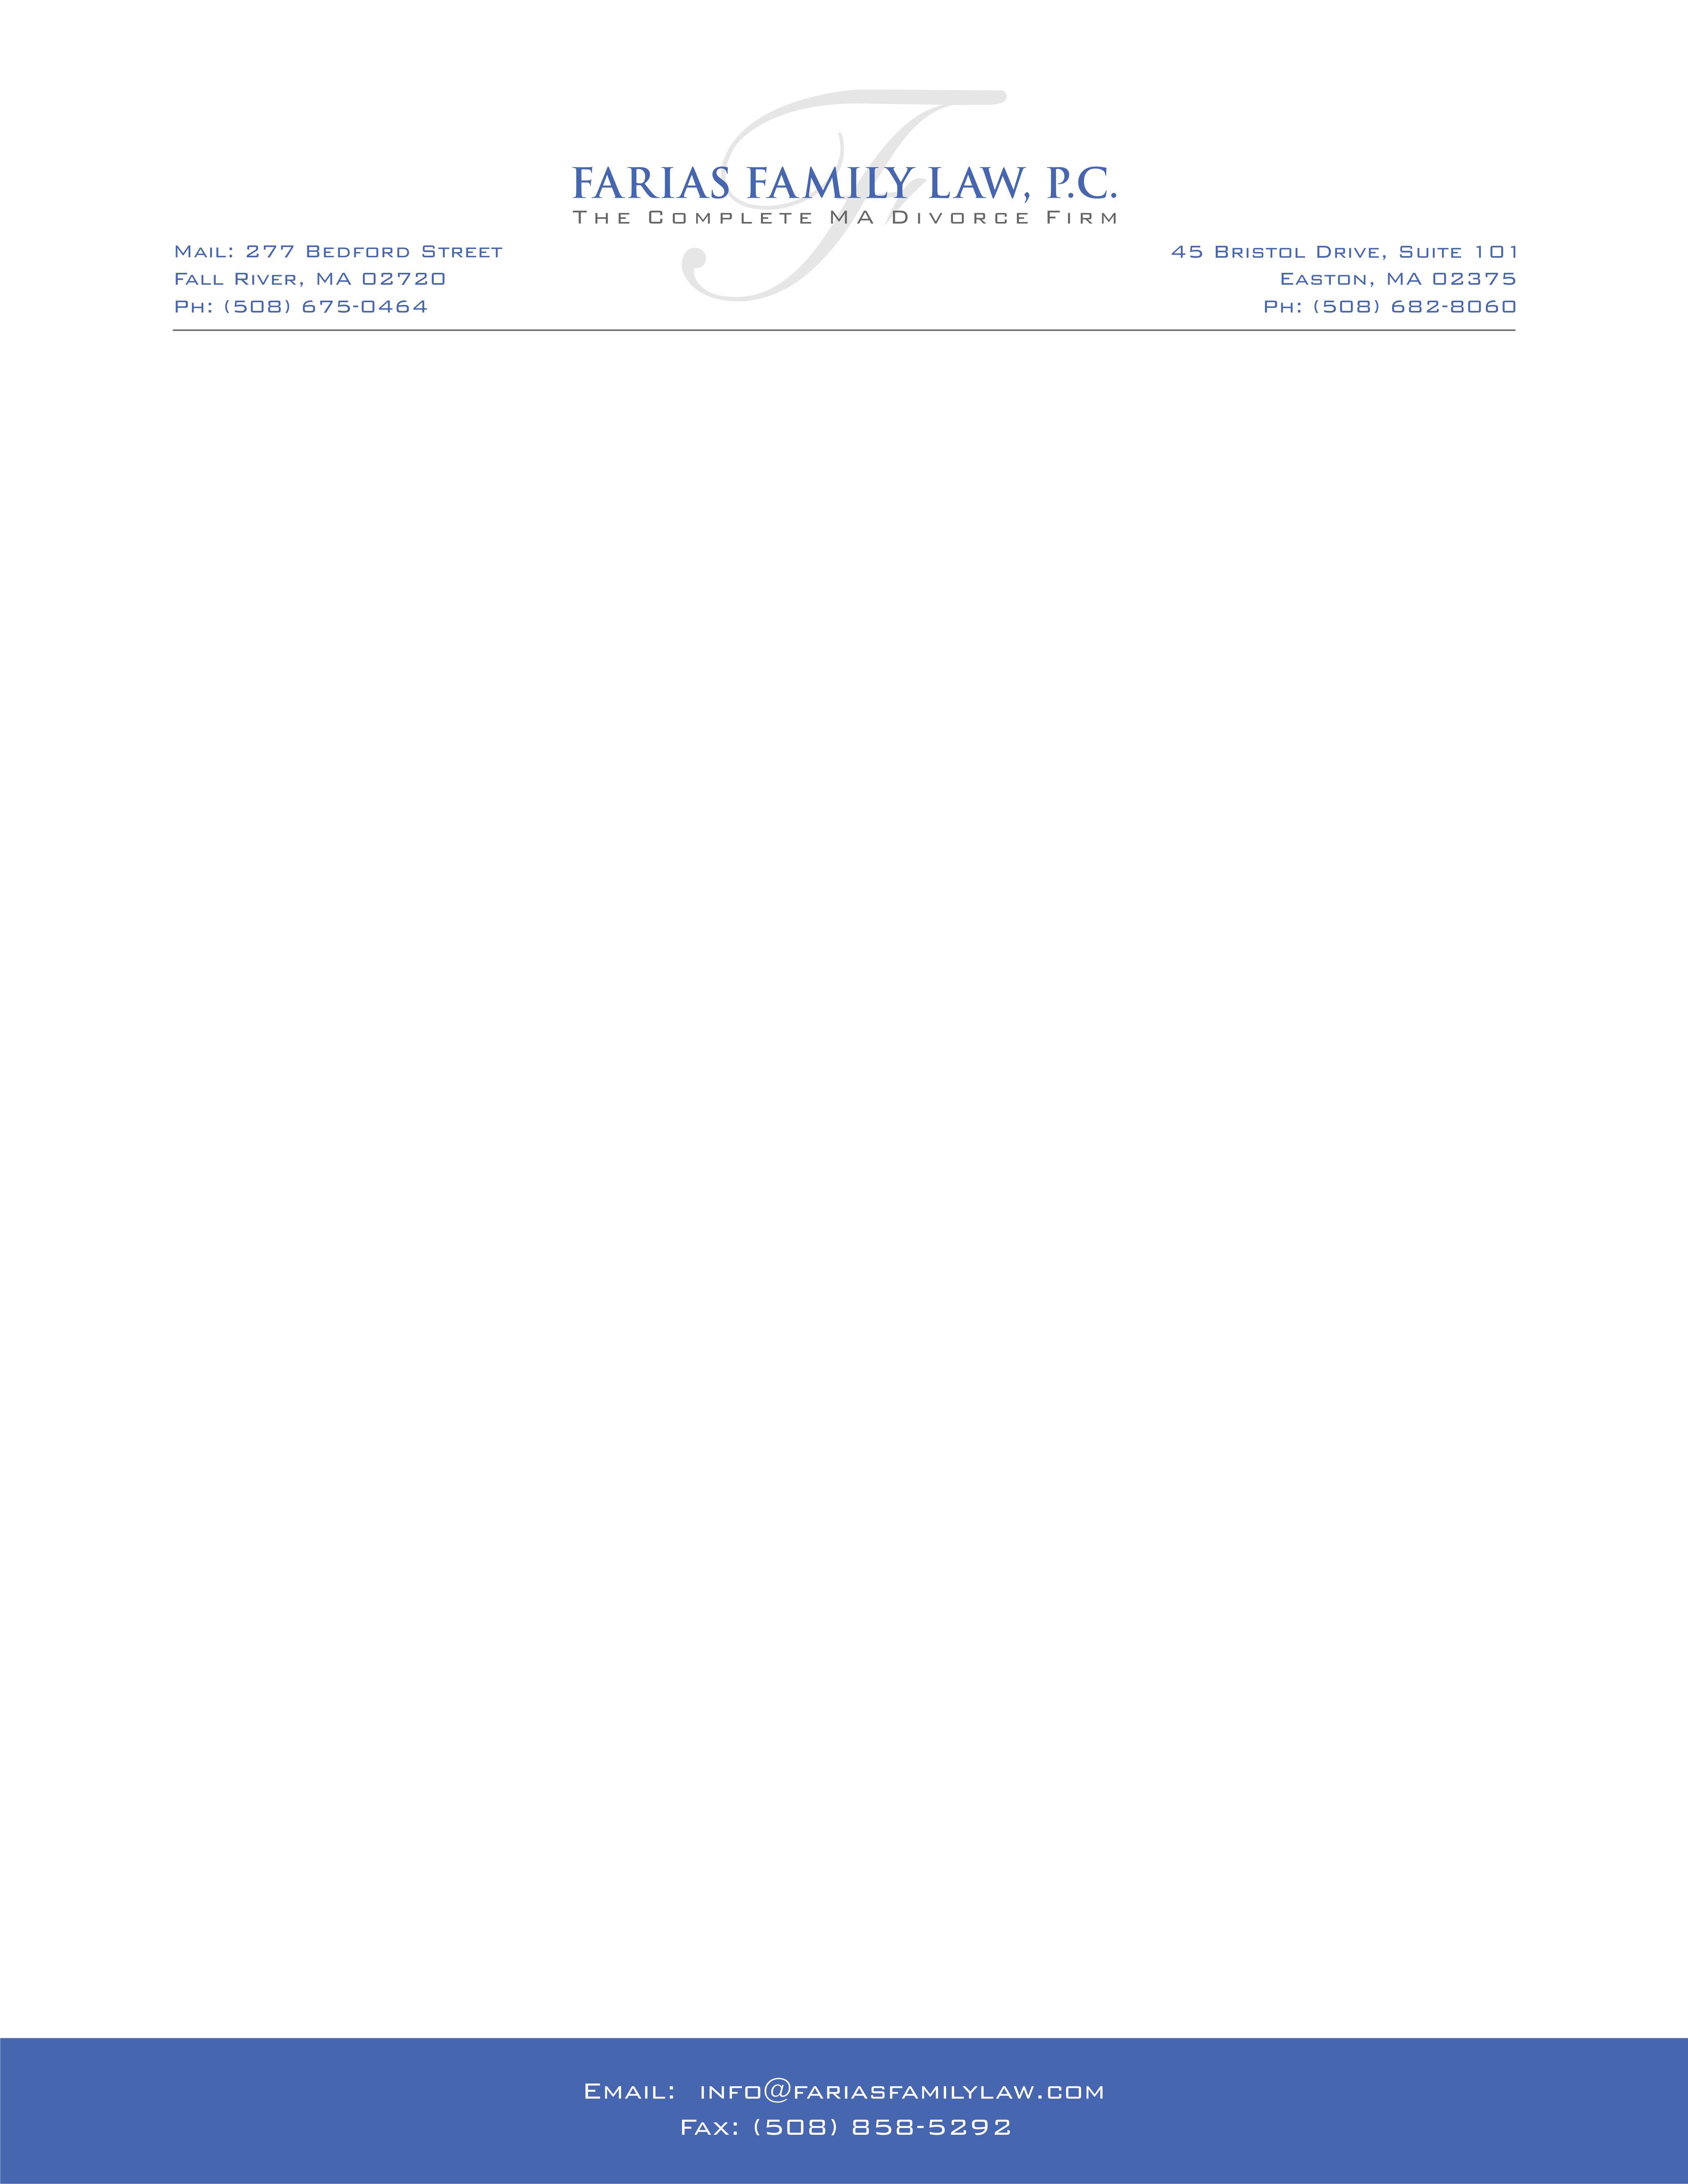 Letterhead/business card change and bigger MB logo